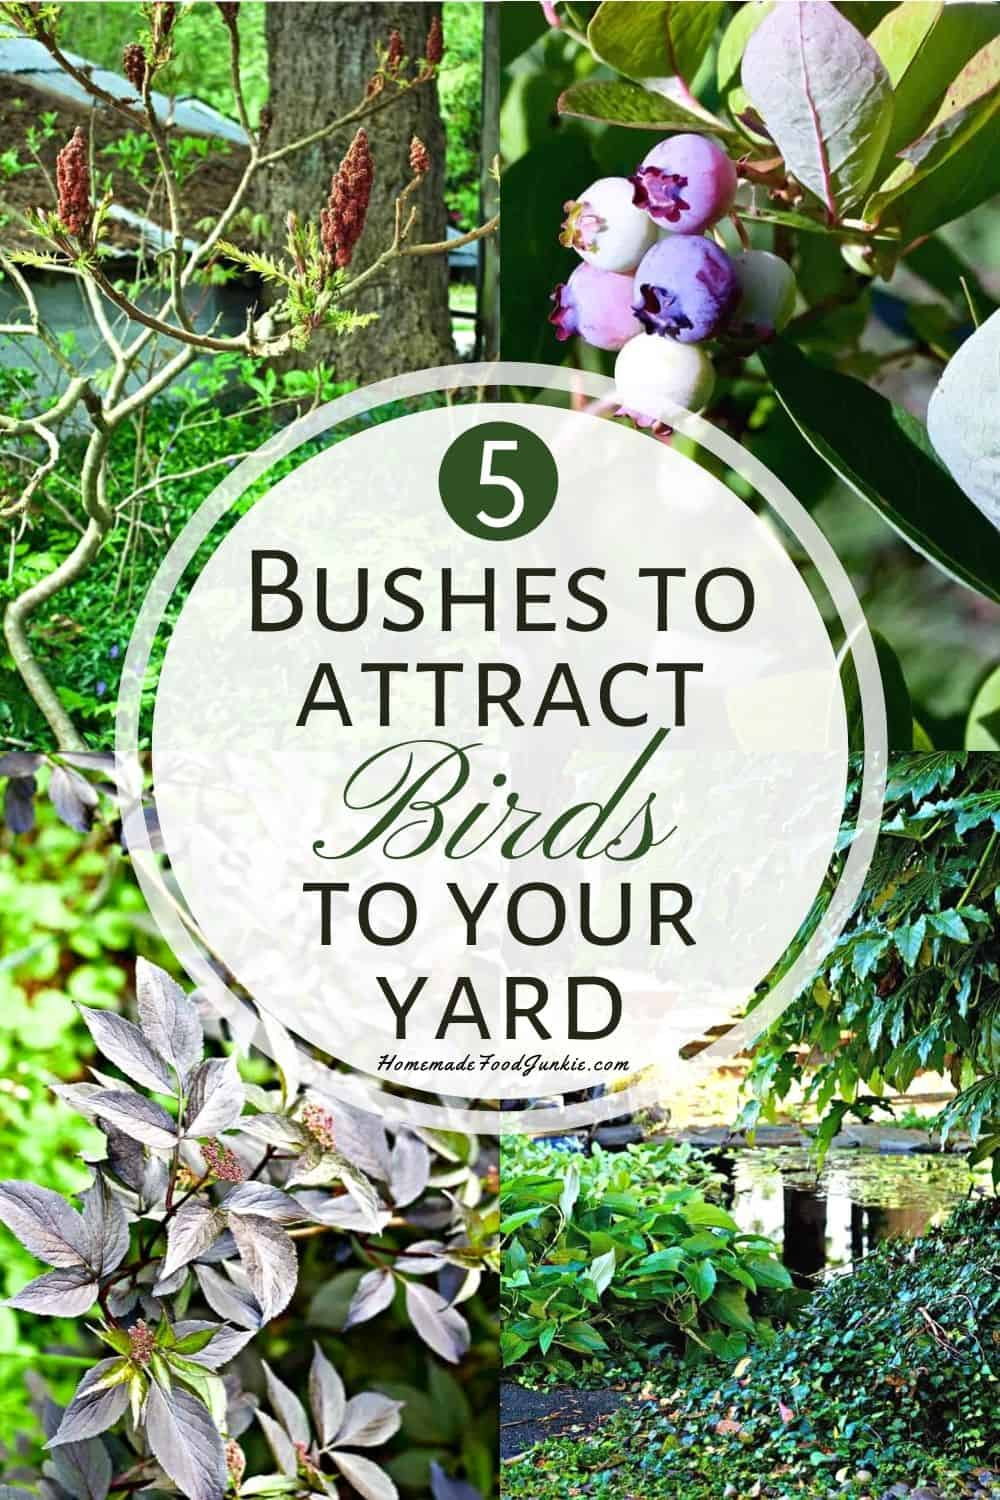 5 bushes to attract birds to your yard-pin image